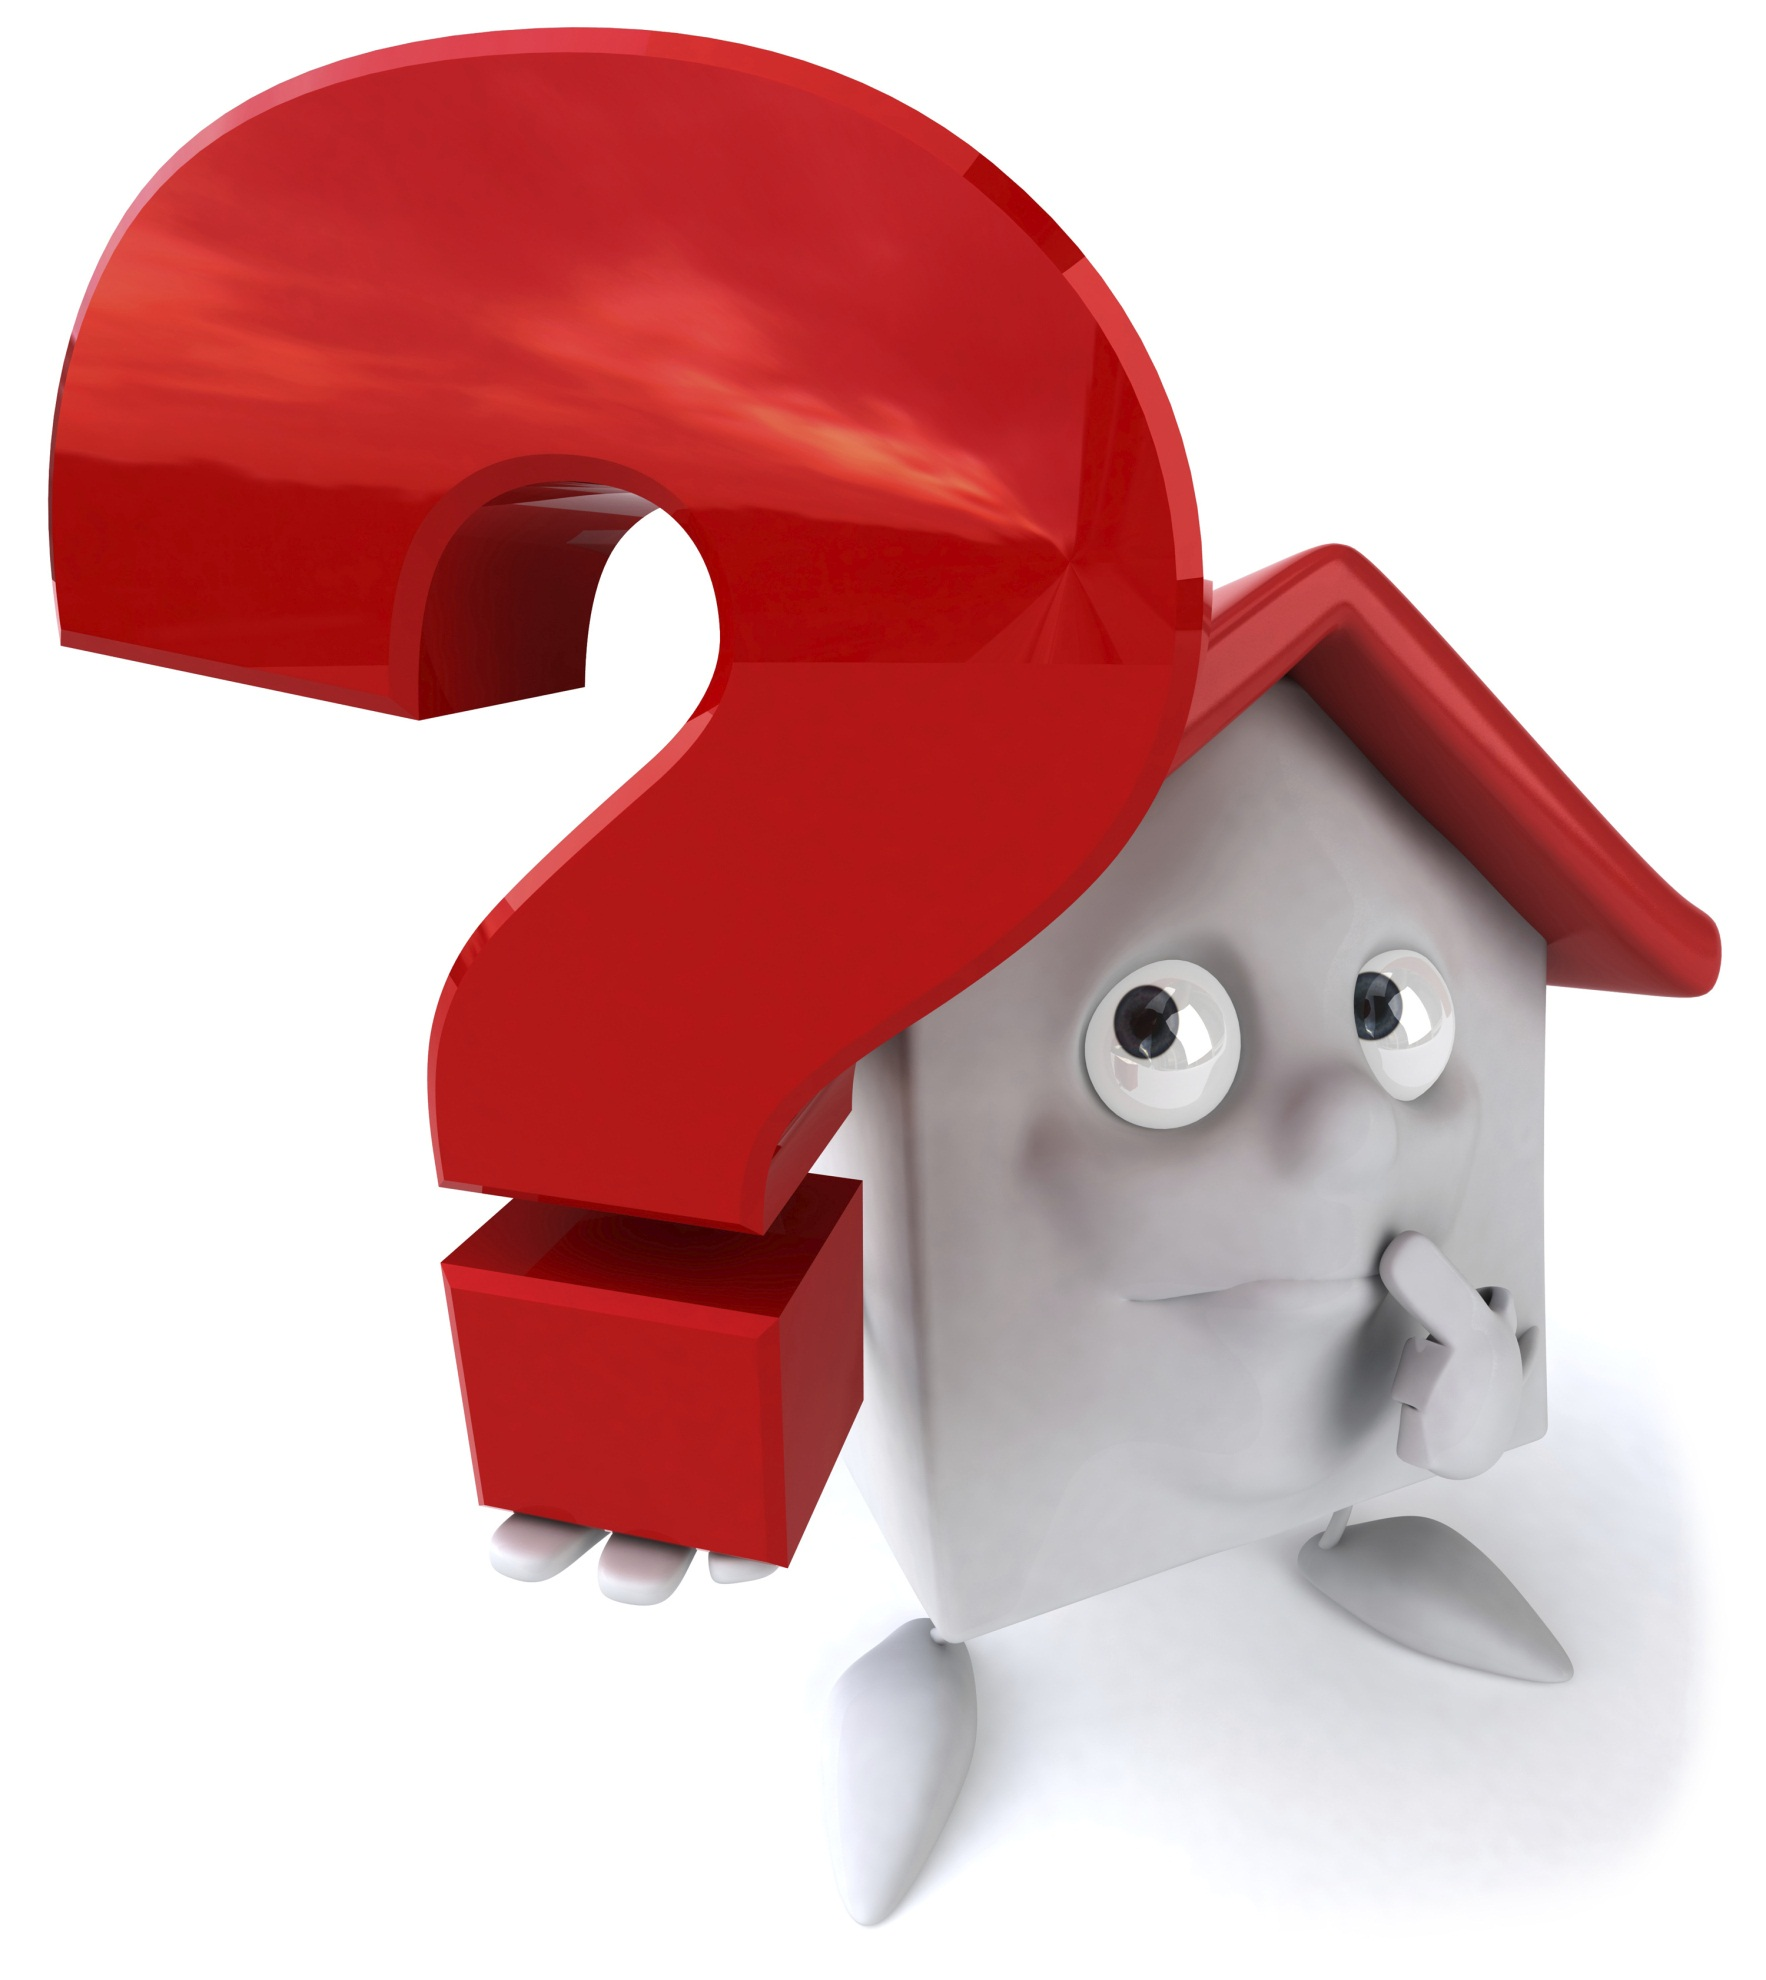 How To Sell While Tenant Occupied: questions to ask a builder when buying a new home